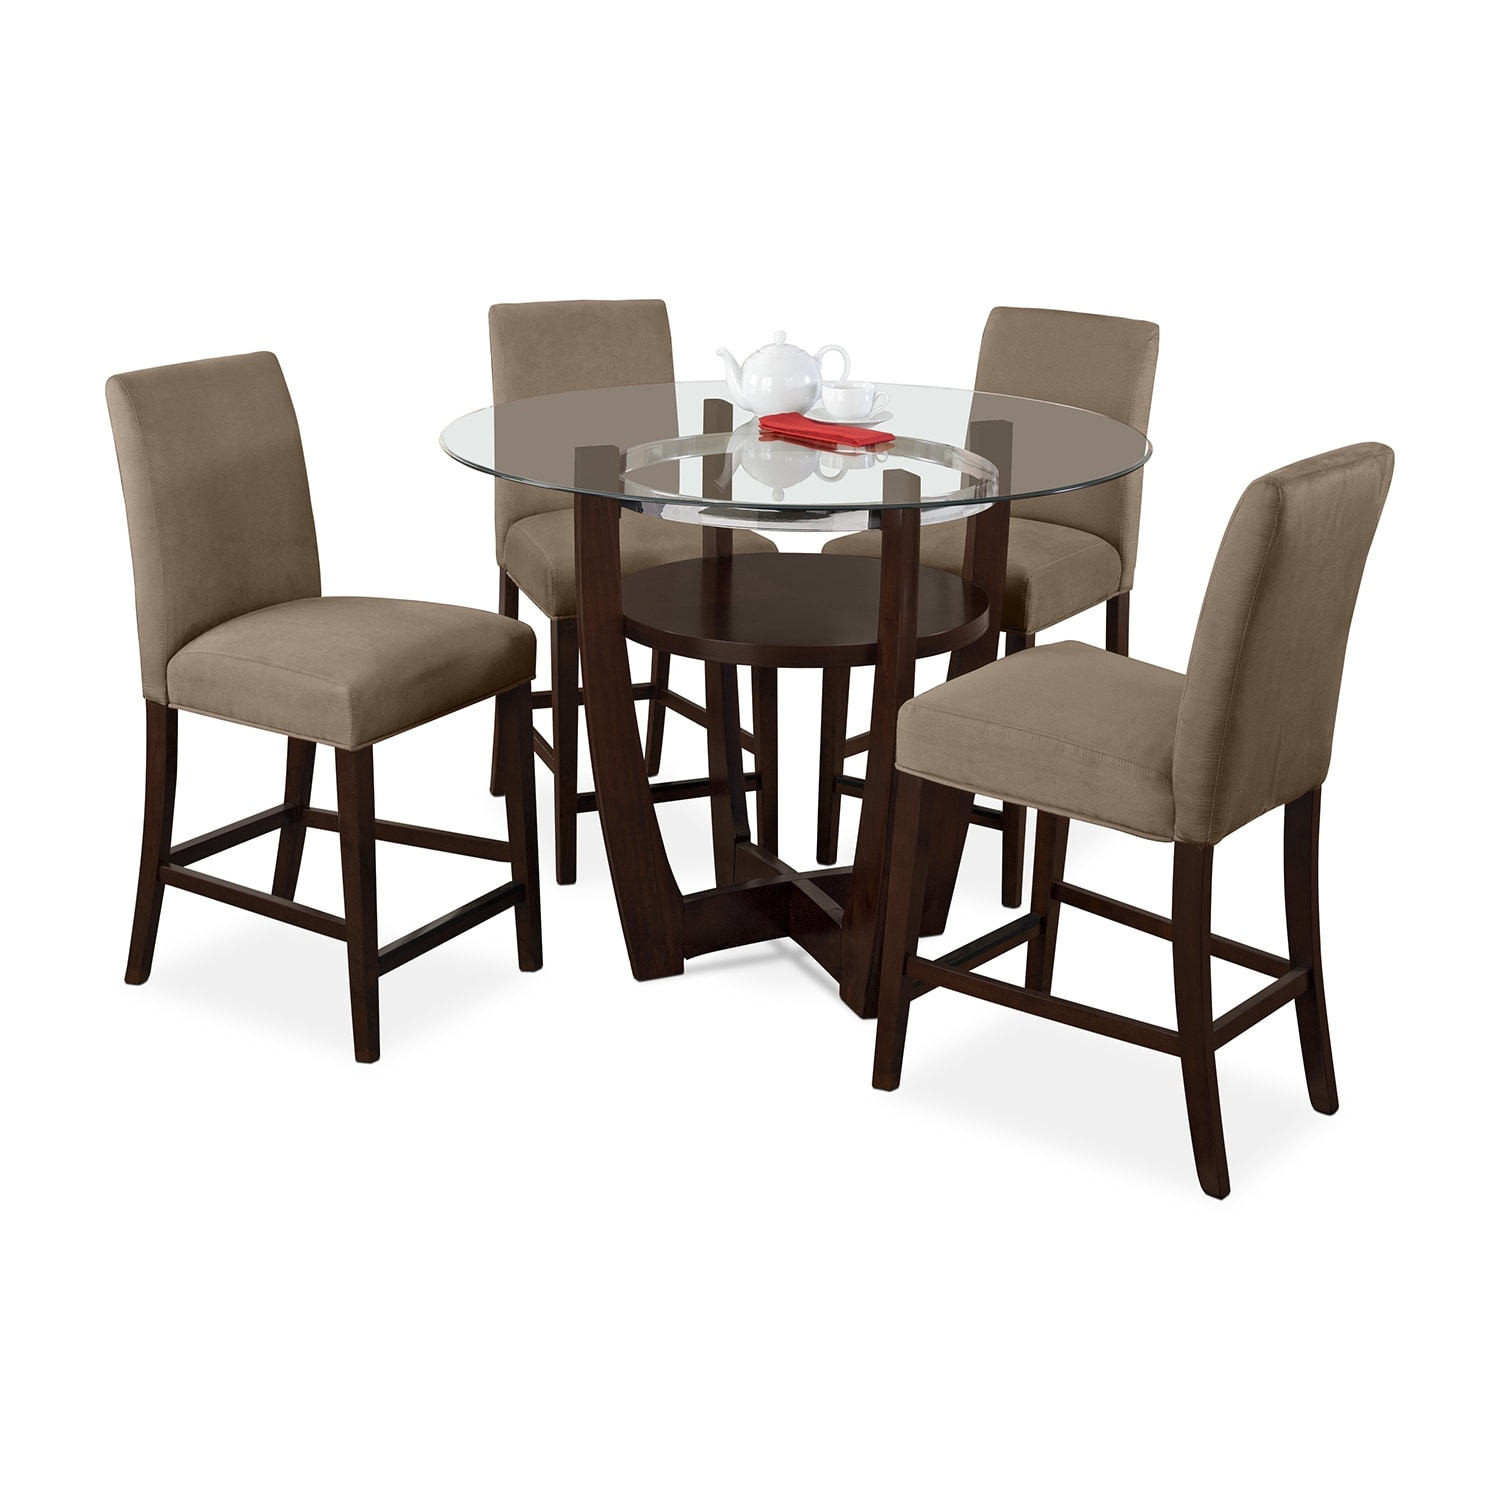 Alcove Counter-Height Dinette With 4 Side Chairs